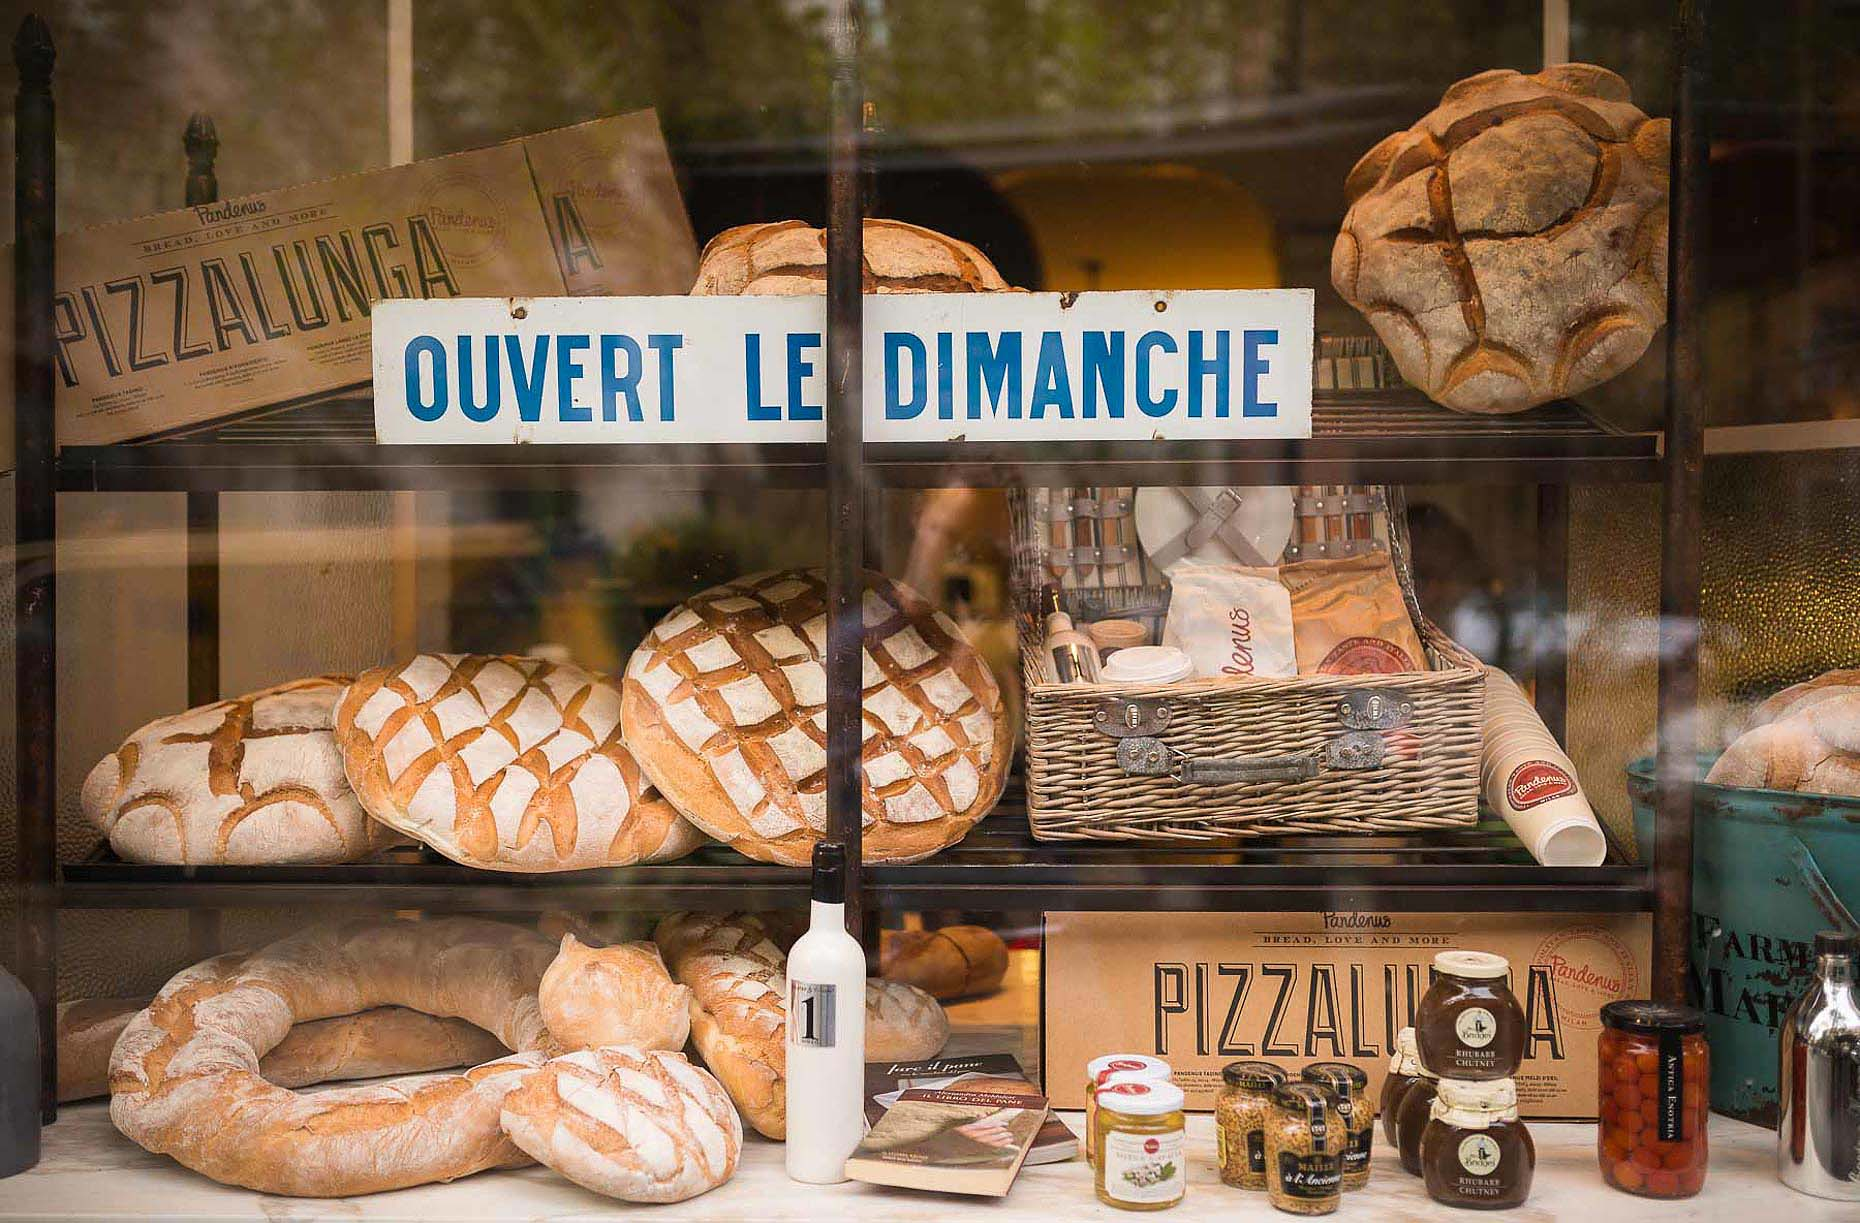 cafe-window-bakery-milan-food-bread-italy-26